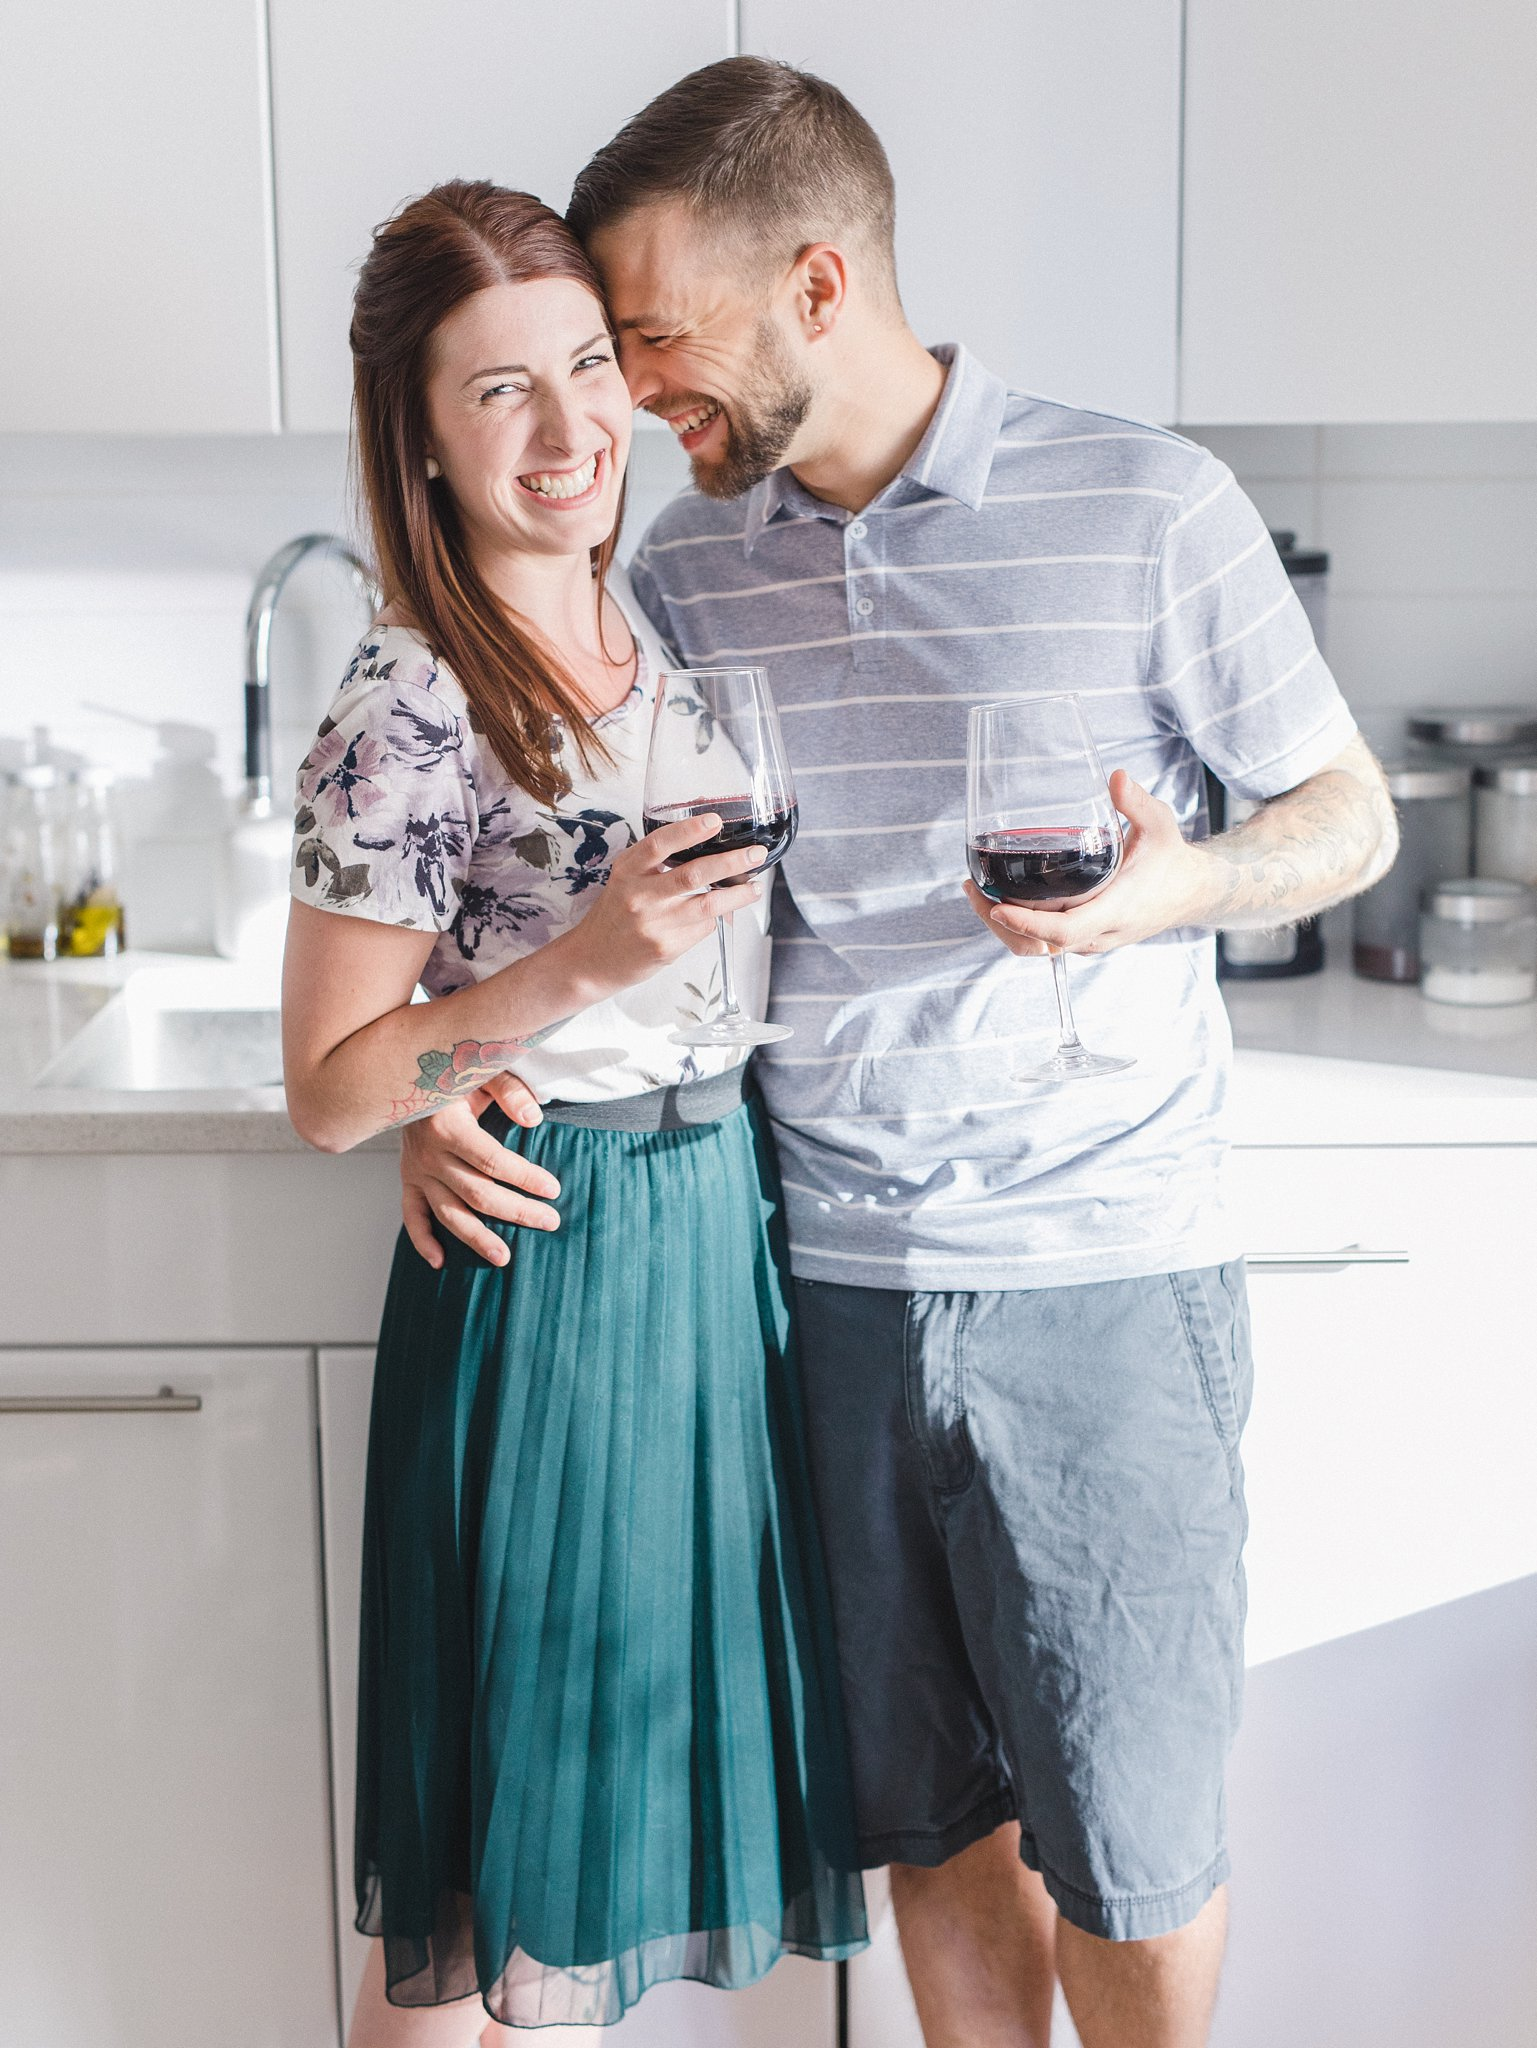 White minimalist kitchen decor condo engagement photos Hintonburg Ottawa